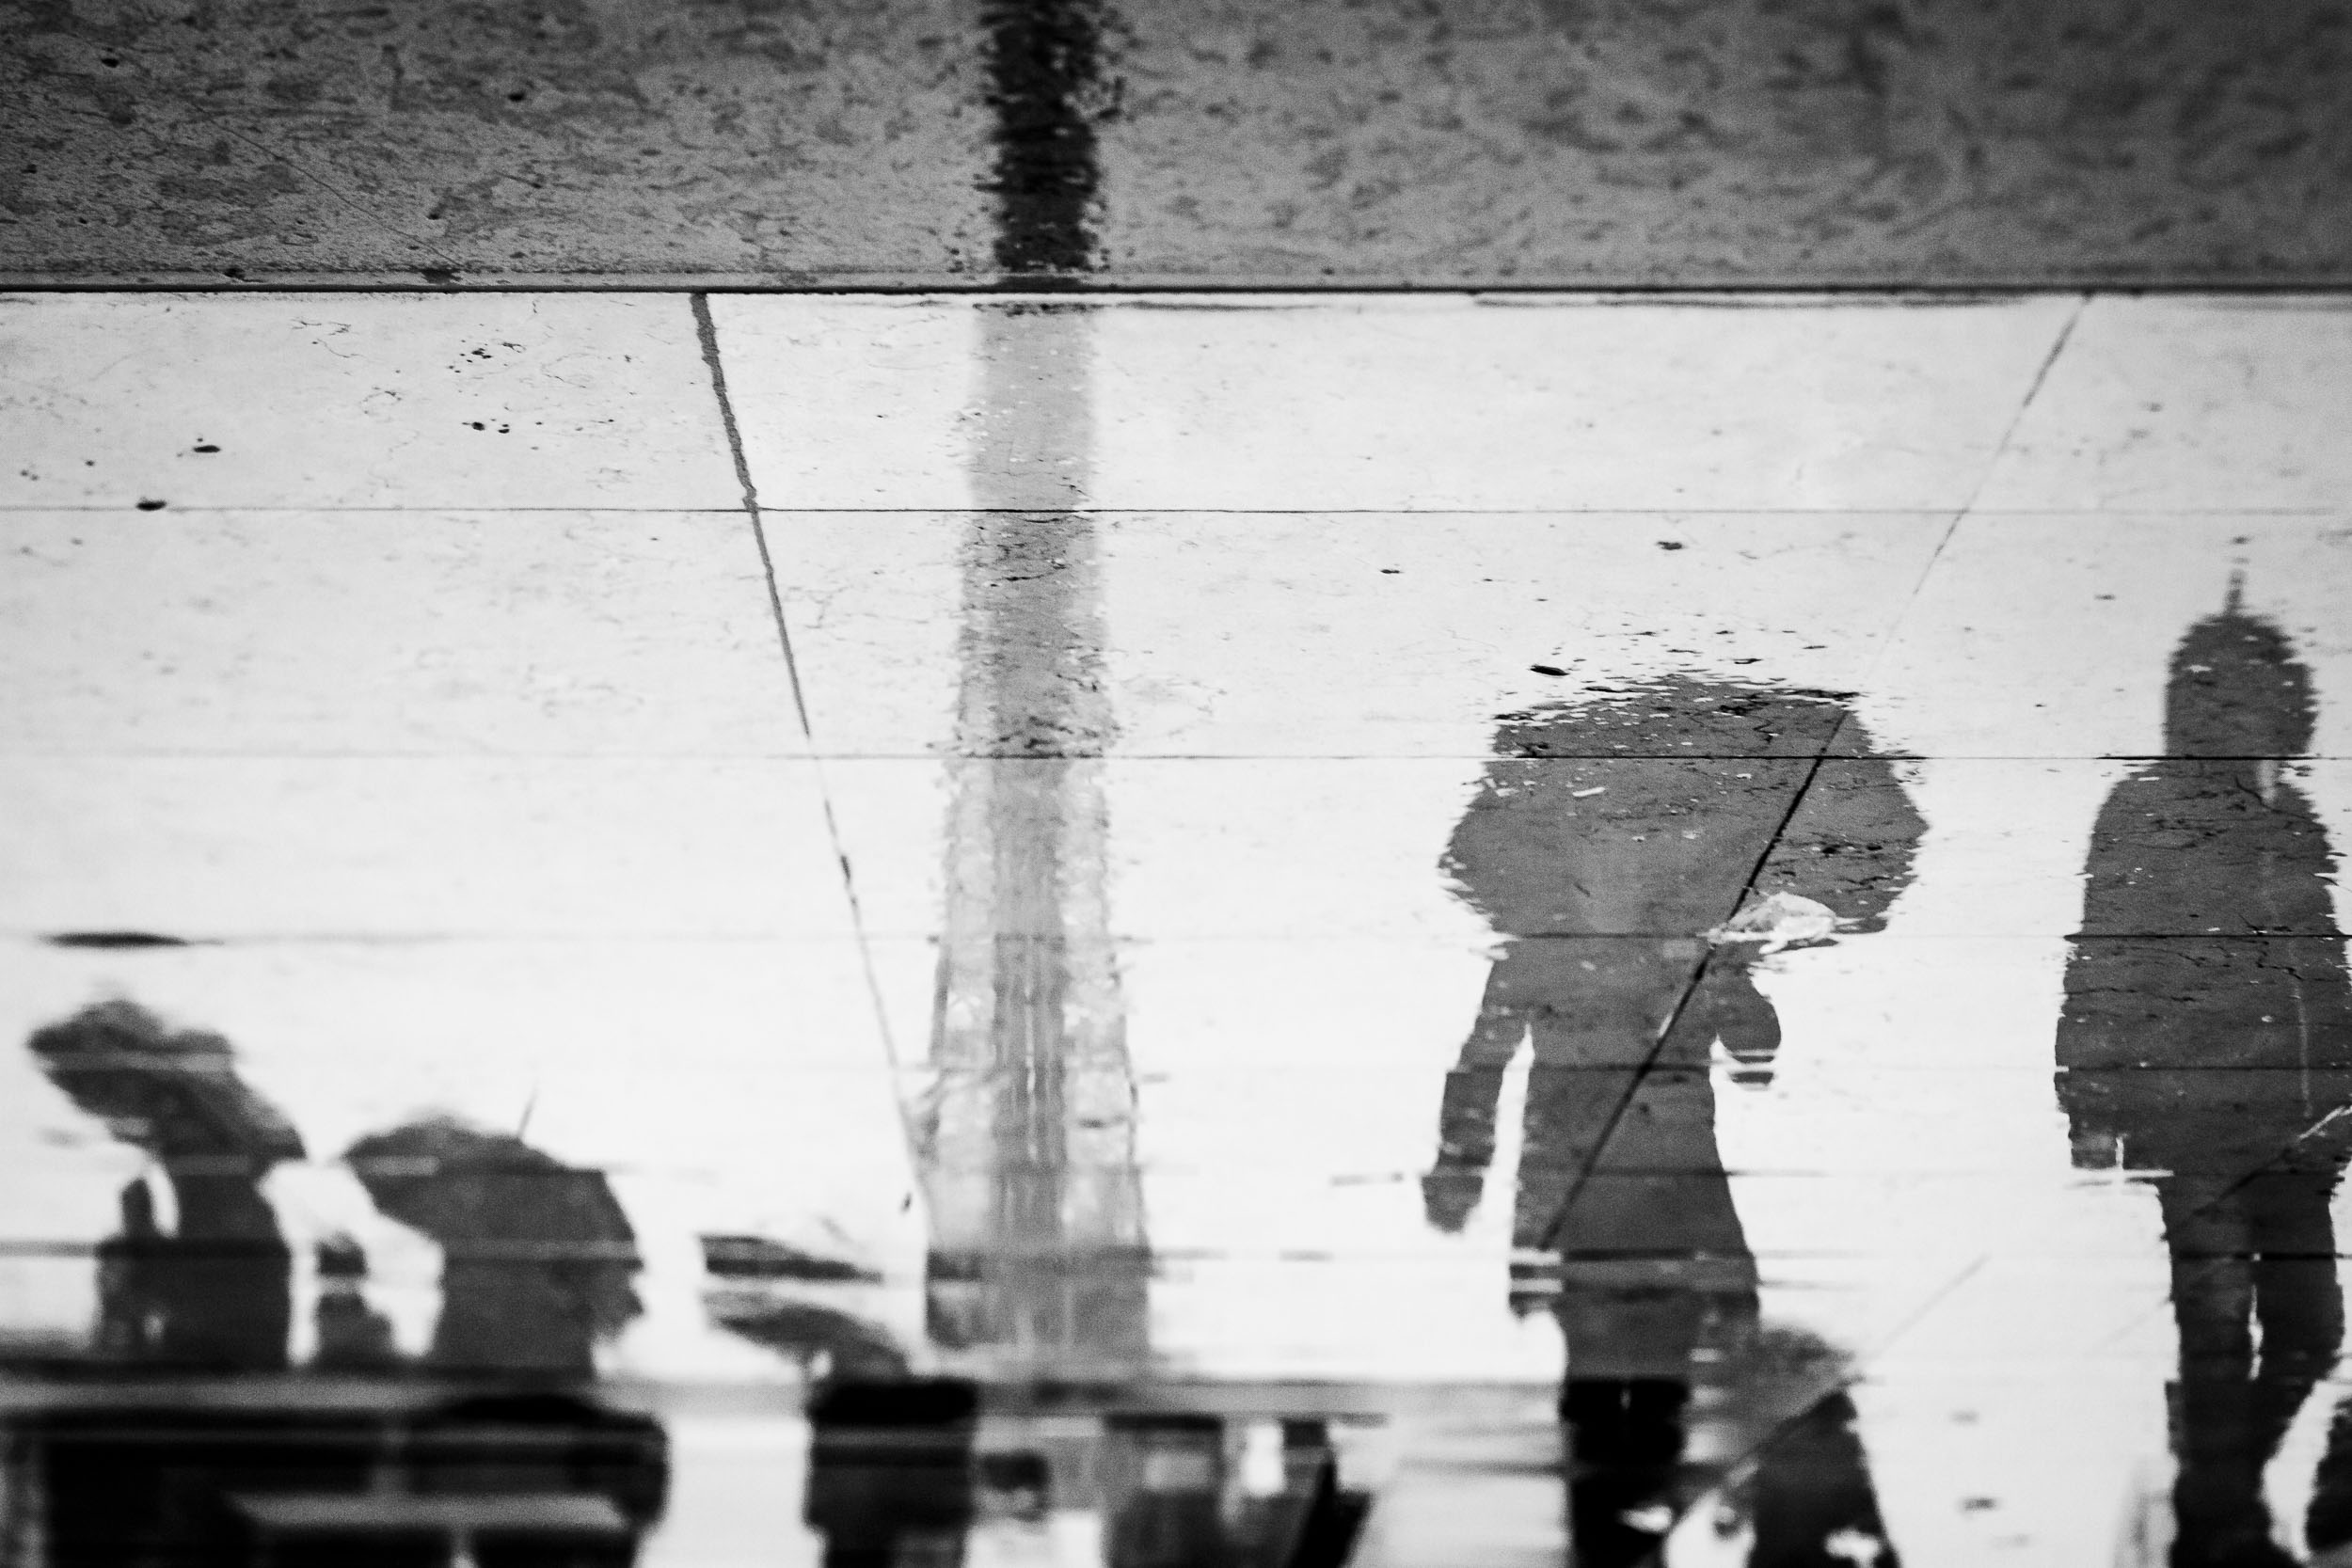 Paris-reflection-of-Eiffel_Tower-and-people.jpg